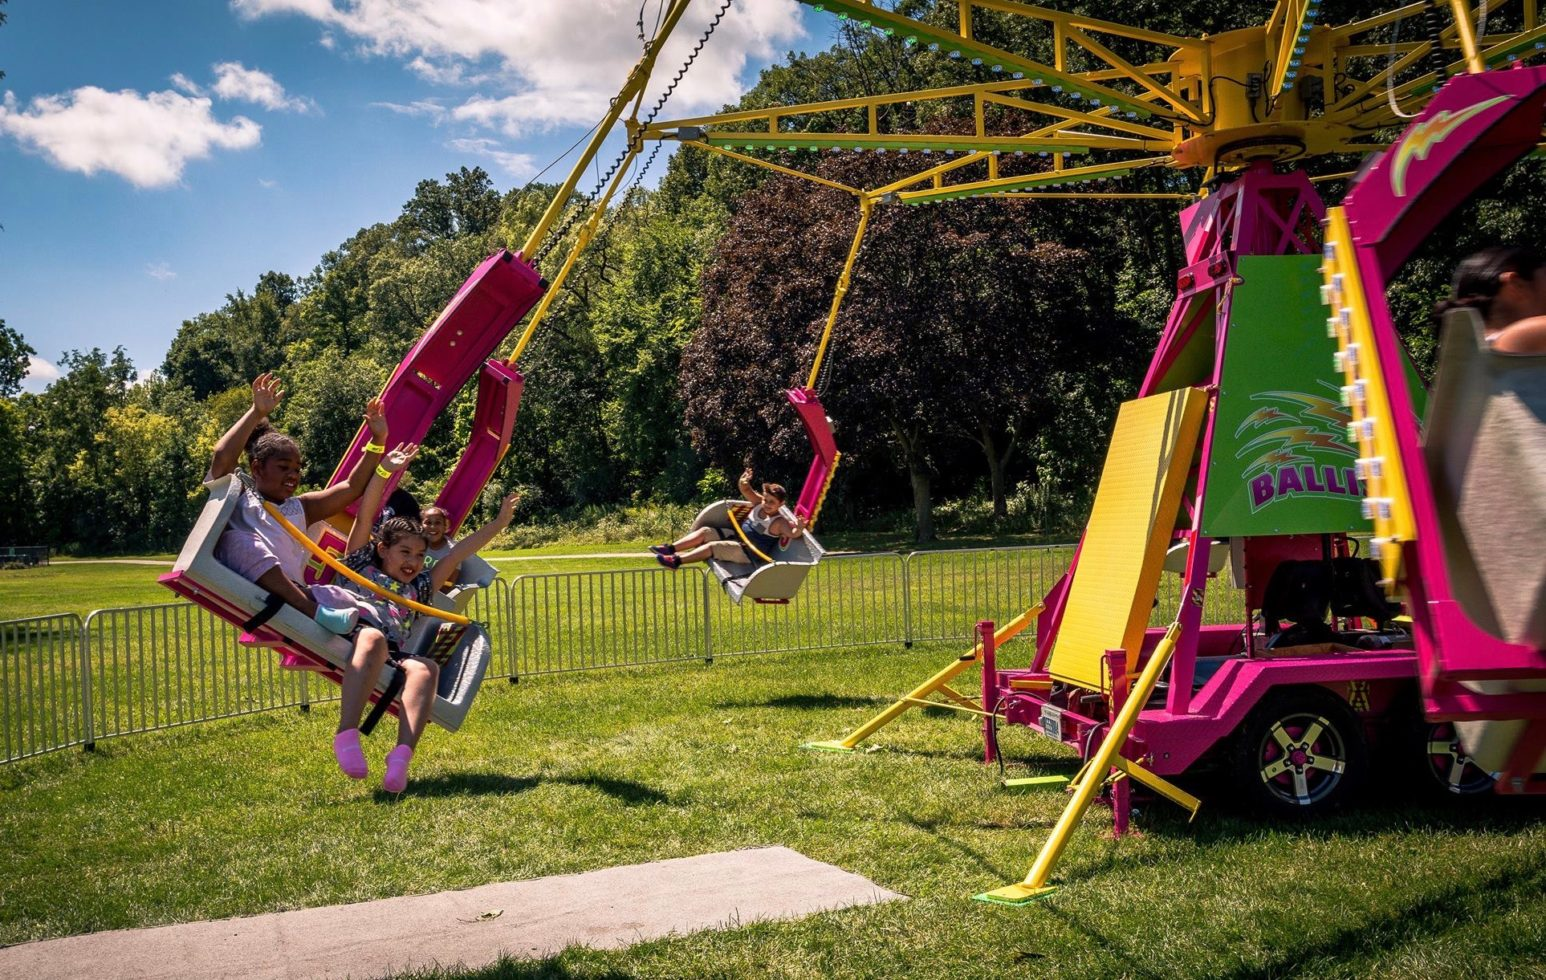 kids on ballistic swing ride